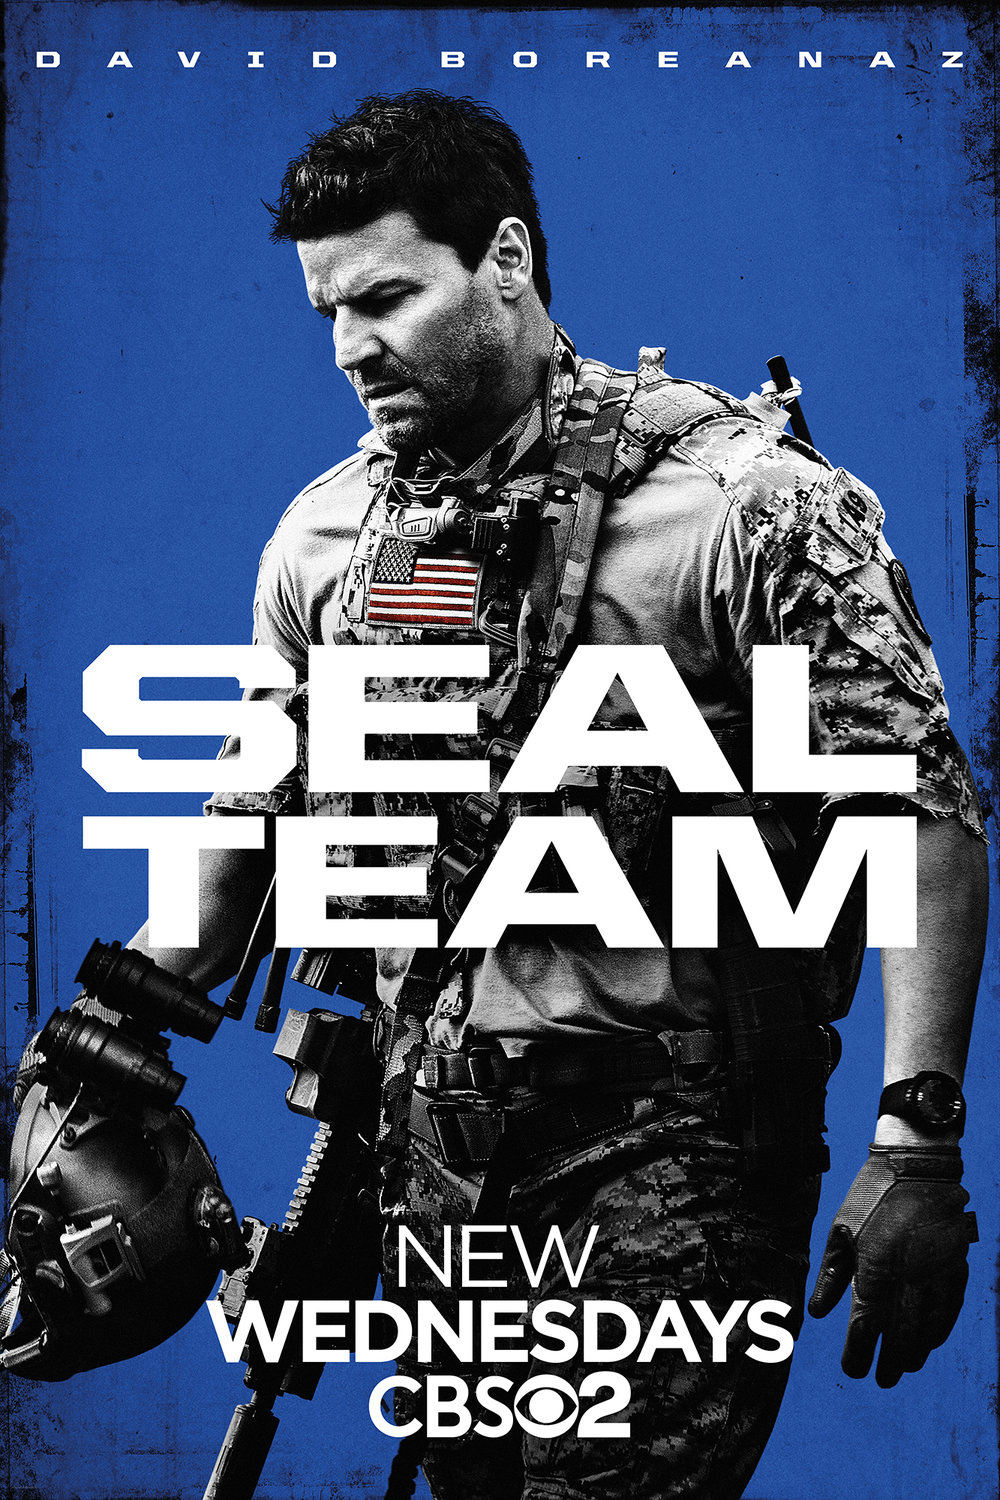 SealTeam_wildpostings_72x48_LA_BLUE_1F_100dpi.jpg